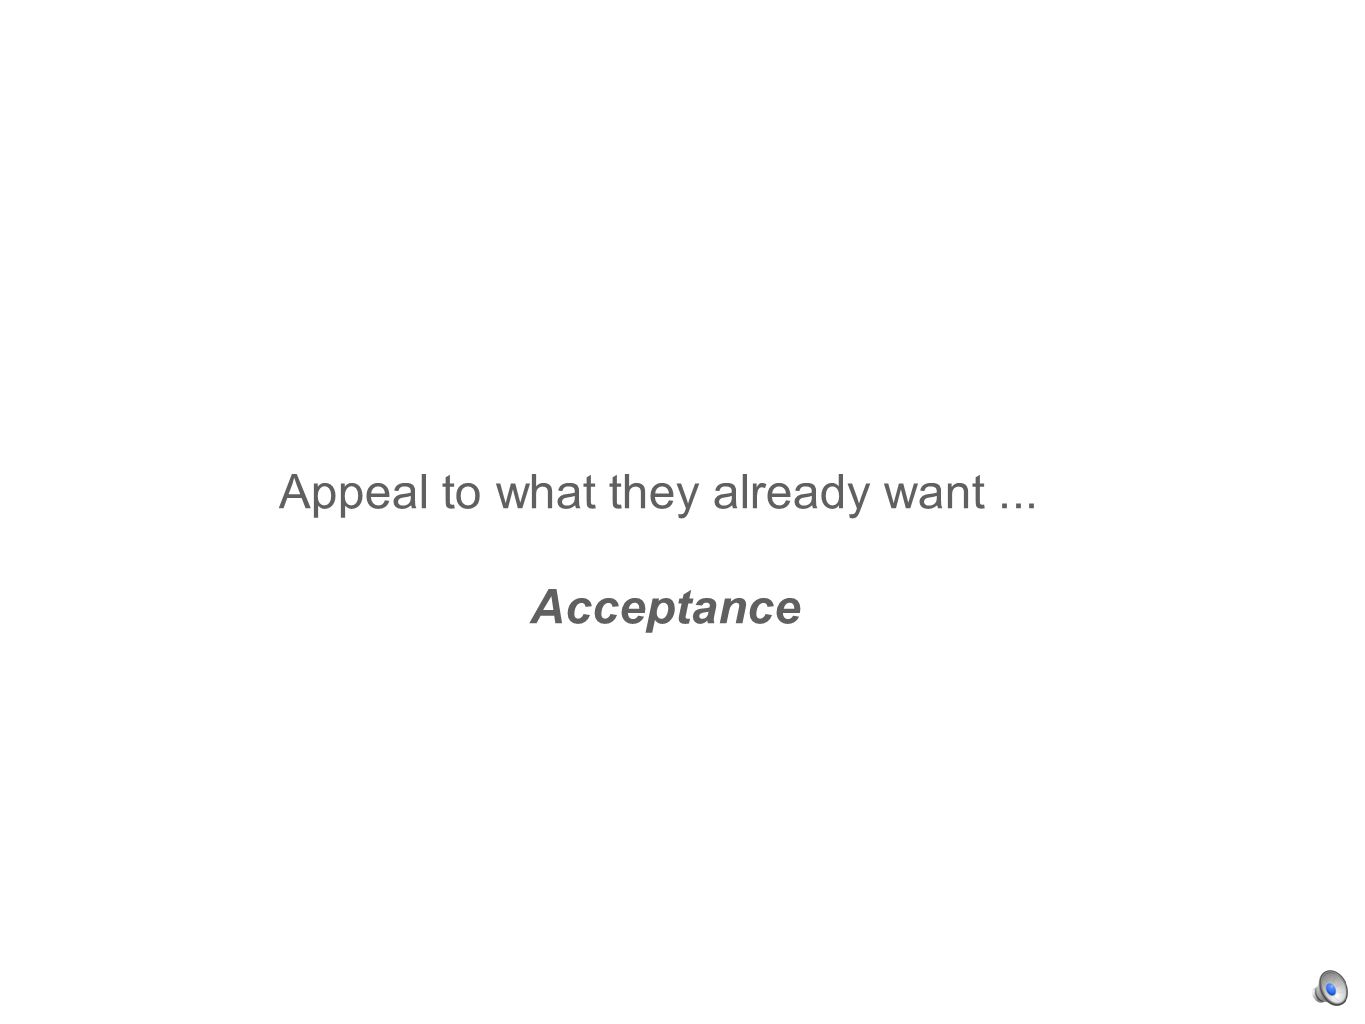 Appeal to what they already want... Acceptance